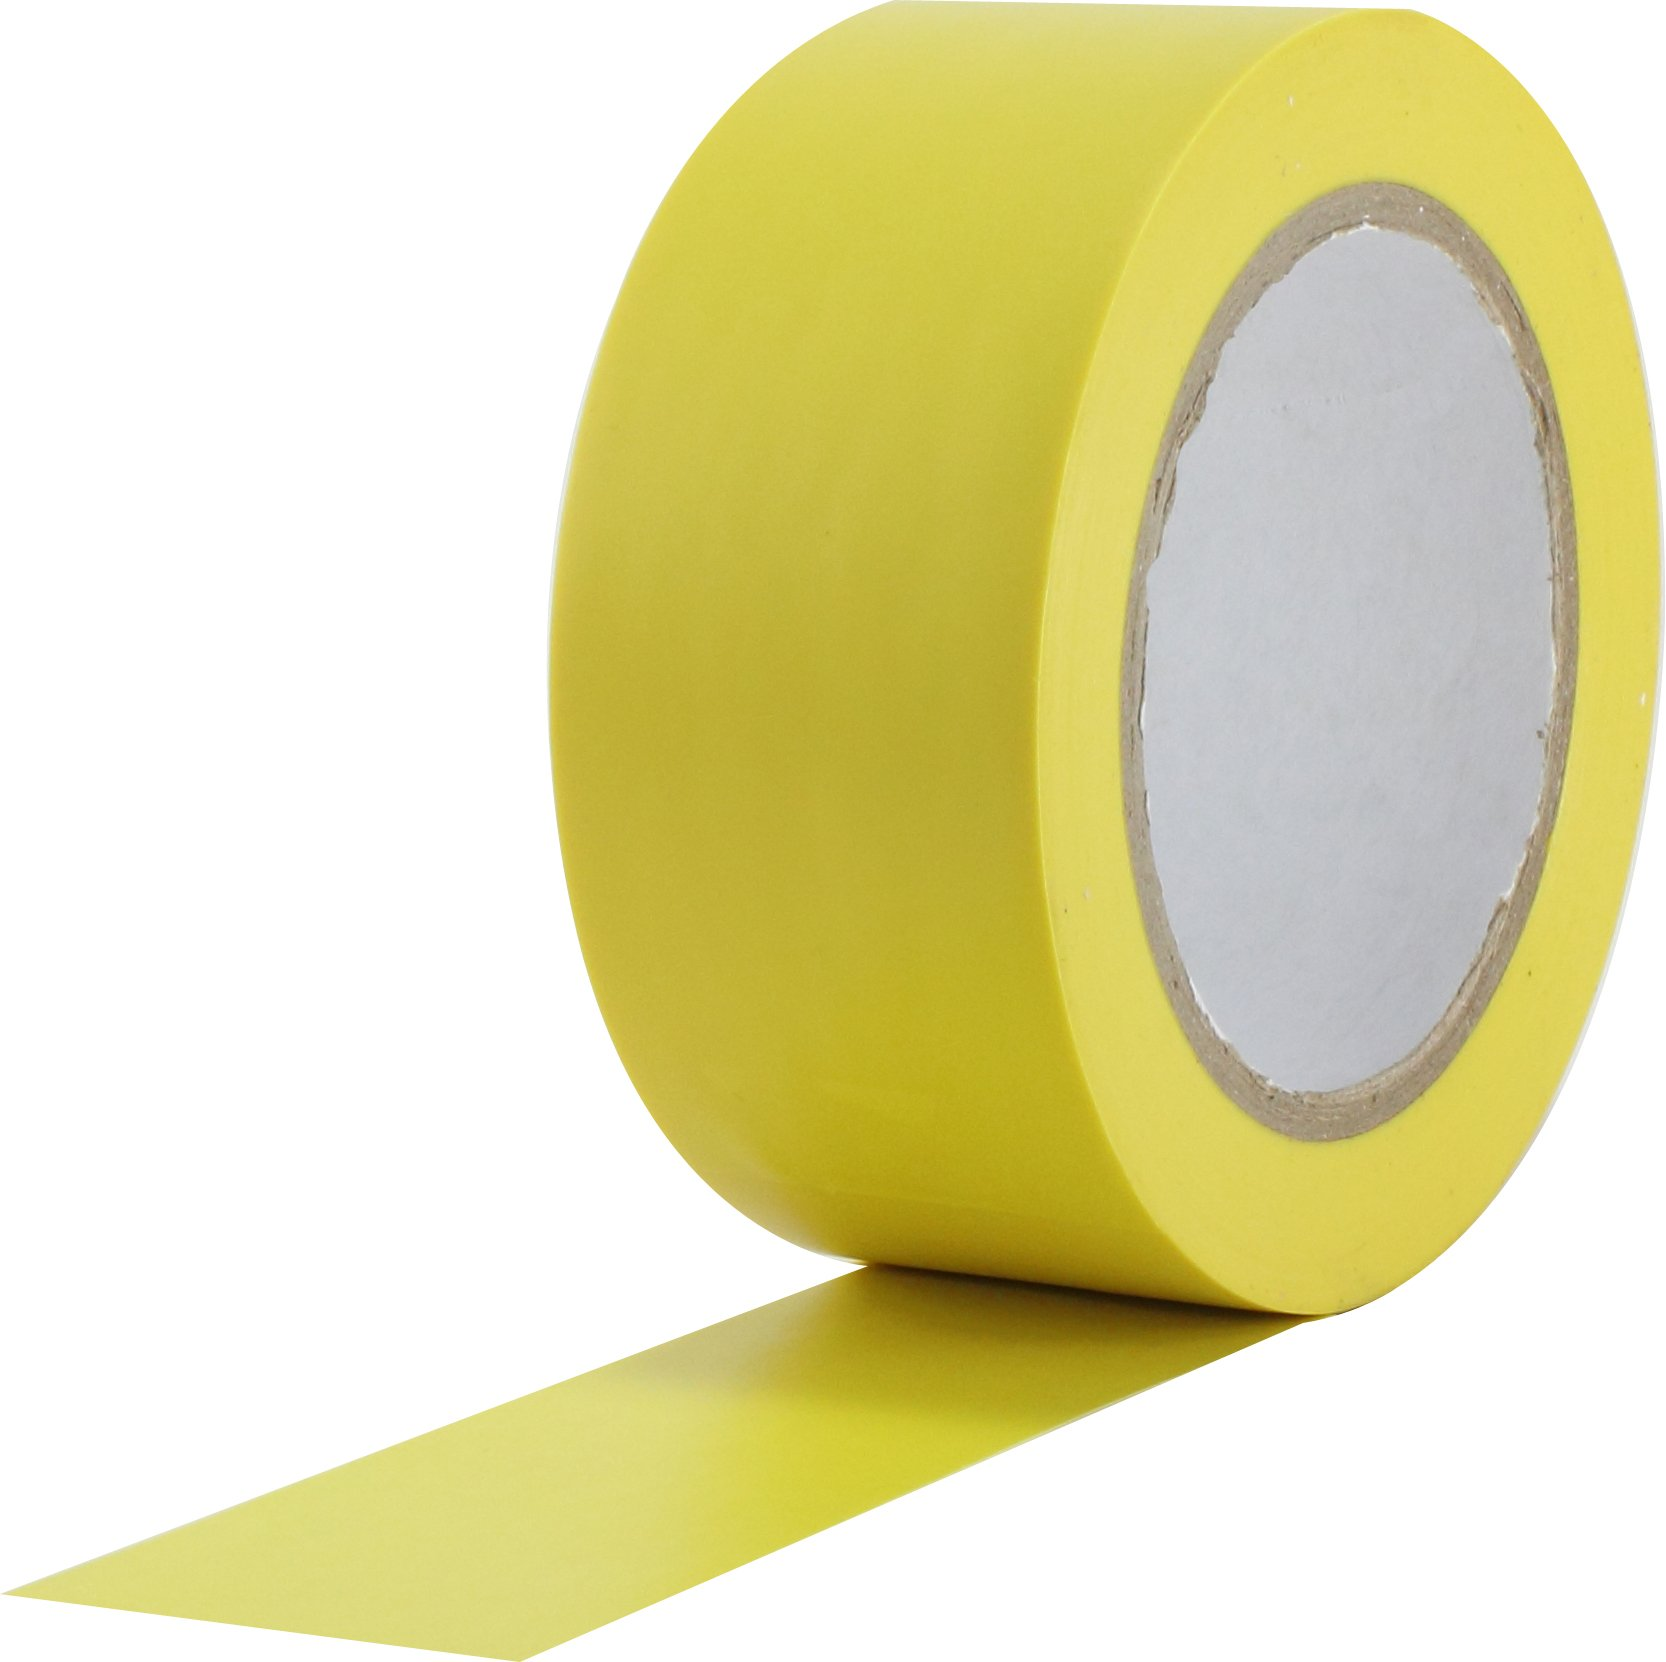 ProTapes Pro 50 Premium Vinyl Safety Marking and Dance Floor Splicing Tape, 6 mils Thick, 36 yds Length x 3'' Width, Yellow (Pack of 1)